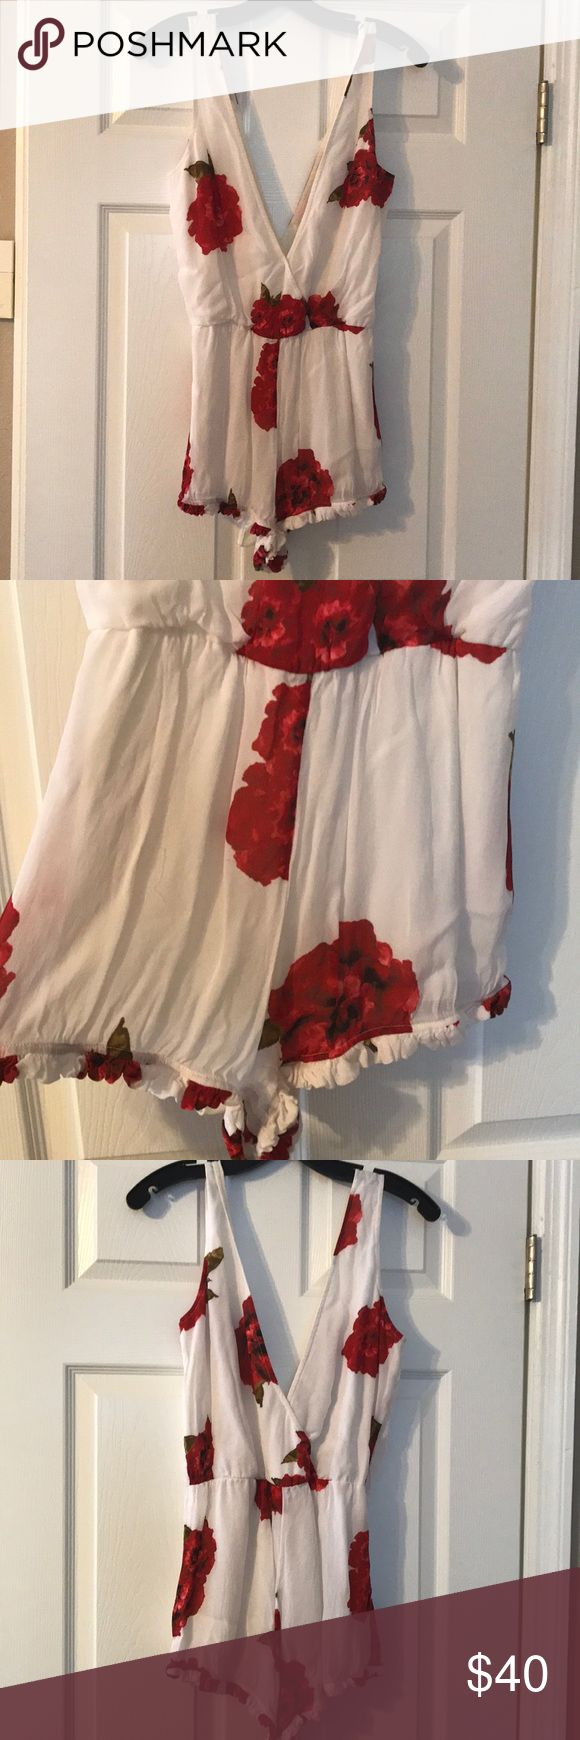 Floral Romper Winston White floral romper. Low v front and back. Ruffled bottom. Looks great with a leather jacket and booties. Size S. Worn twice. Perfect condition. winston white Pants Jumpsuits & Rompers